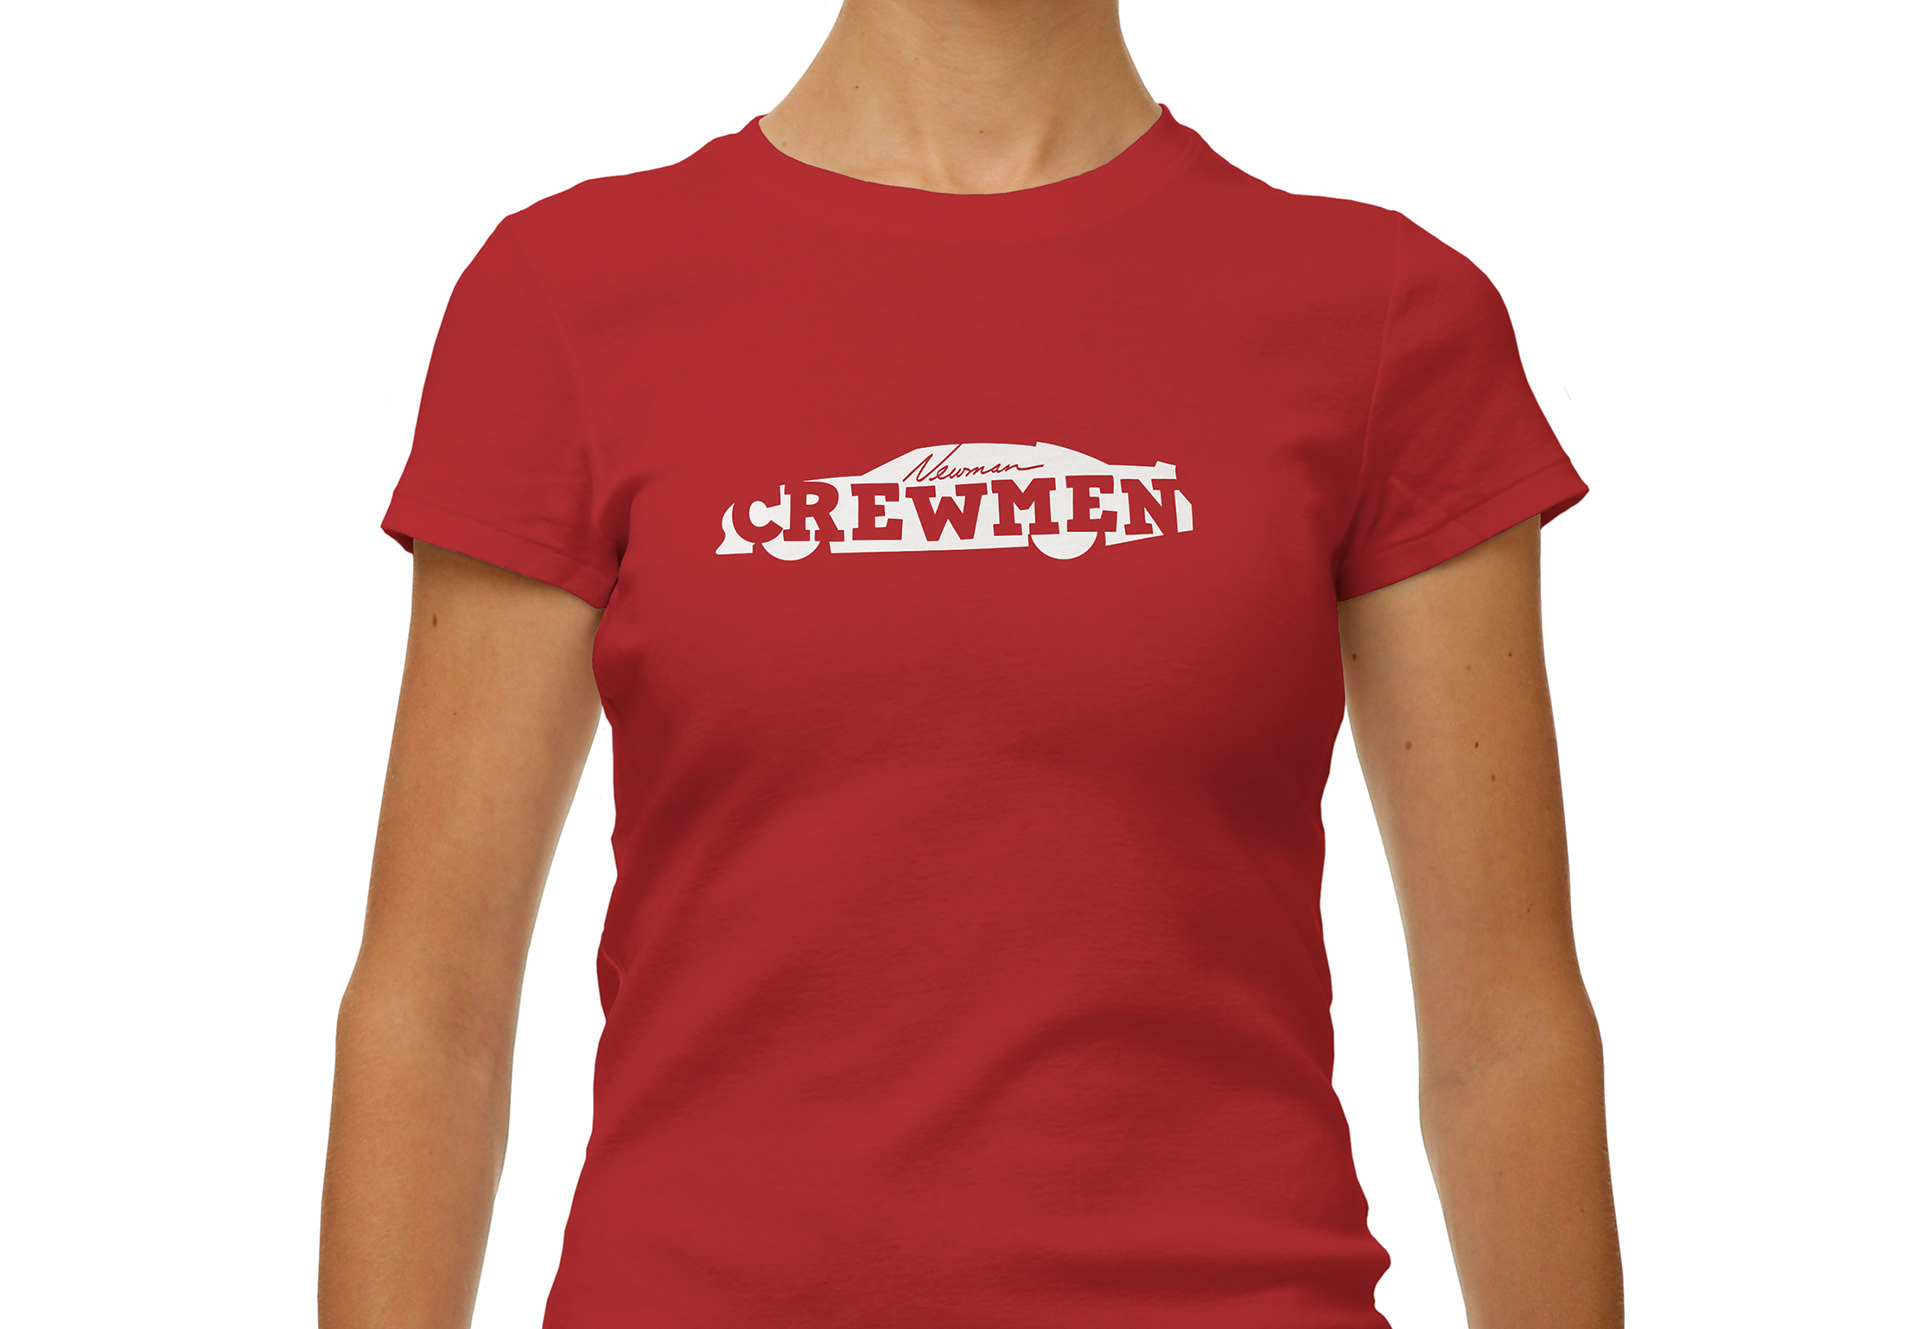 quicken-loans-racing-newman-crewmen-shirt.jpg